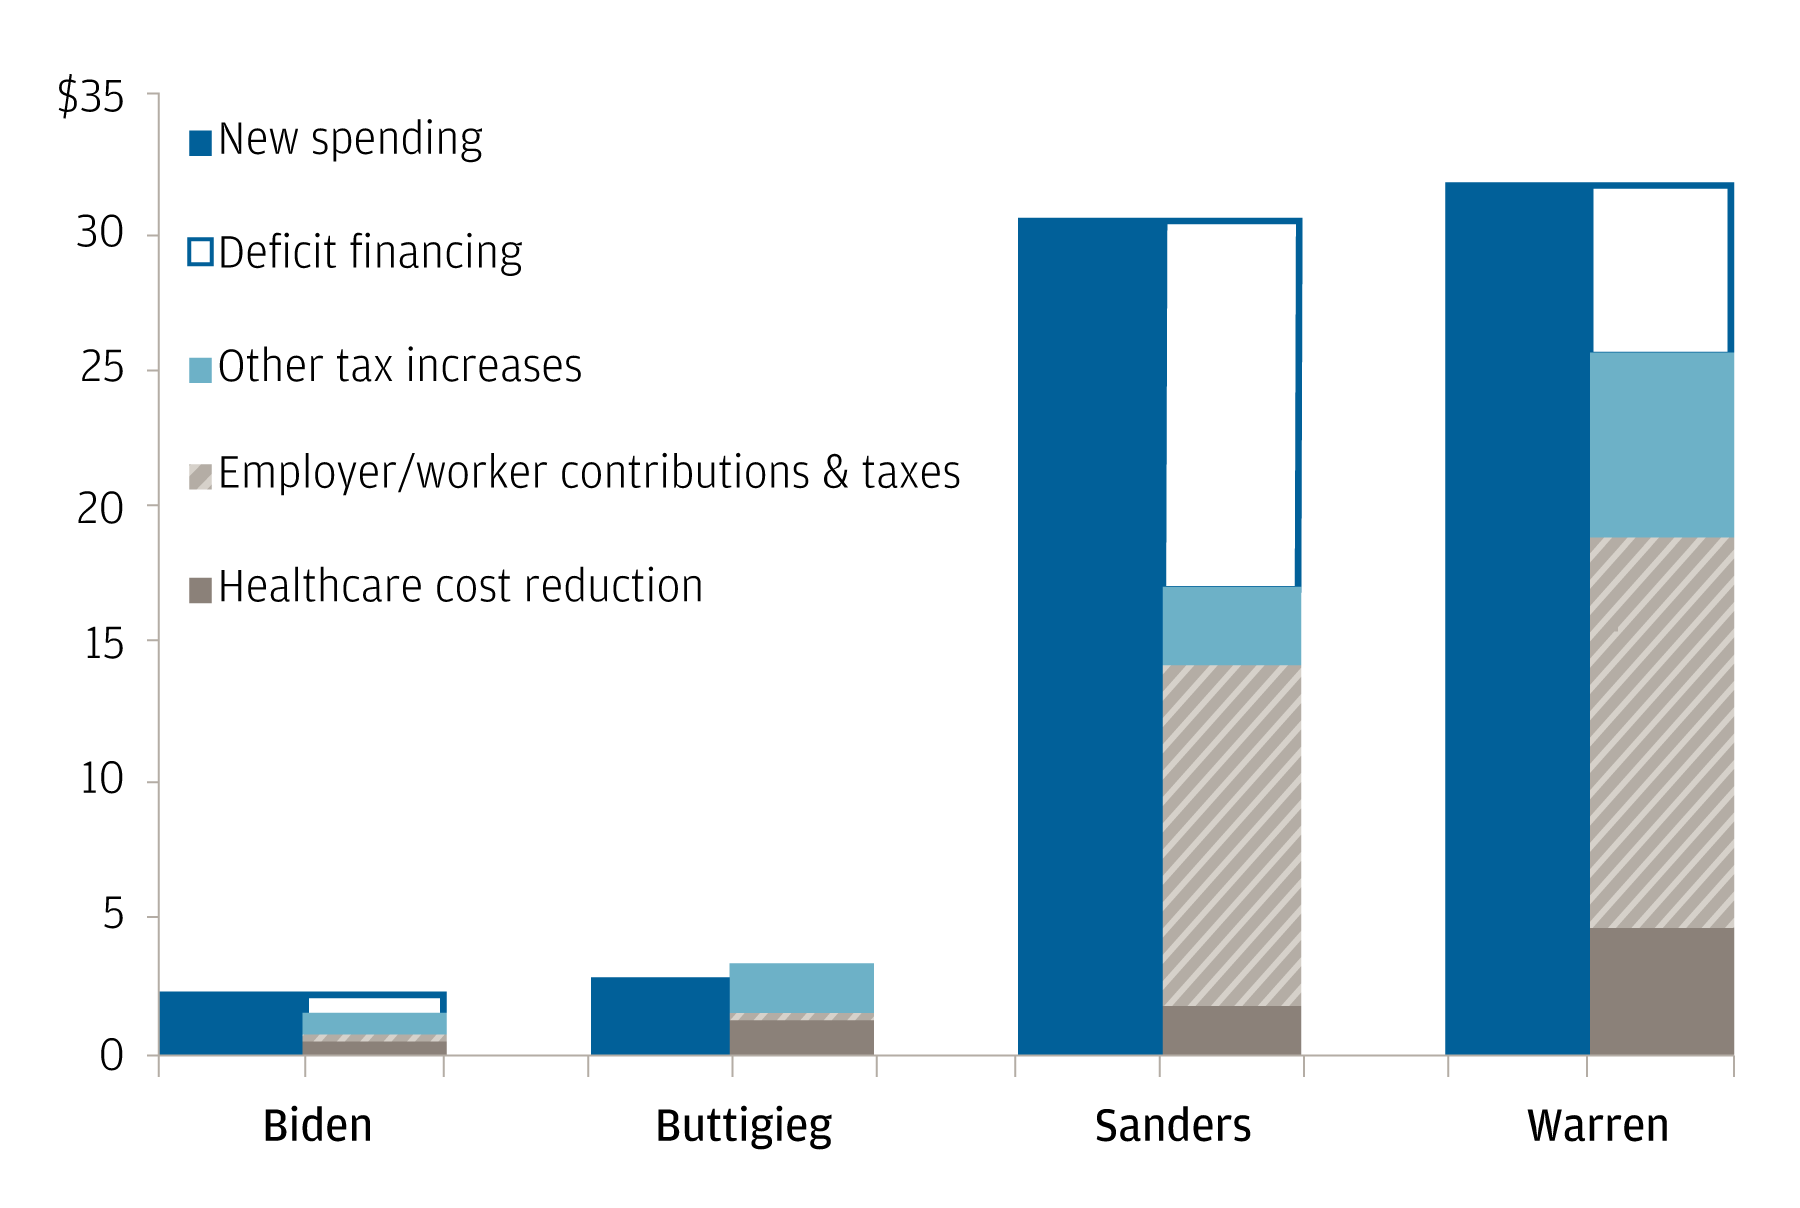 Bar chart compares four U.S. presidential candidates—Biden, Buttigieg, Sanders and Warren—in the amount each would spend (in trillions of U.S. dollars) in: New spending, deficit financing, other tax increases, employer/worker contributions & taxes, and healthcare cost reduction. The chart highlights that Sanders and Warren are higher in all aspects compared to Biden and Buttigieg.